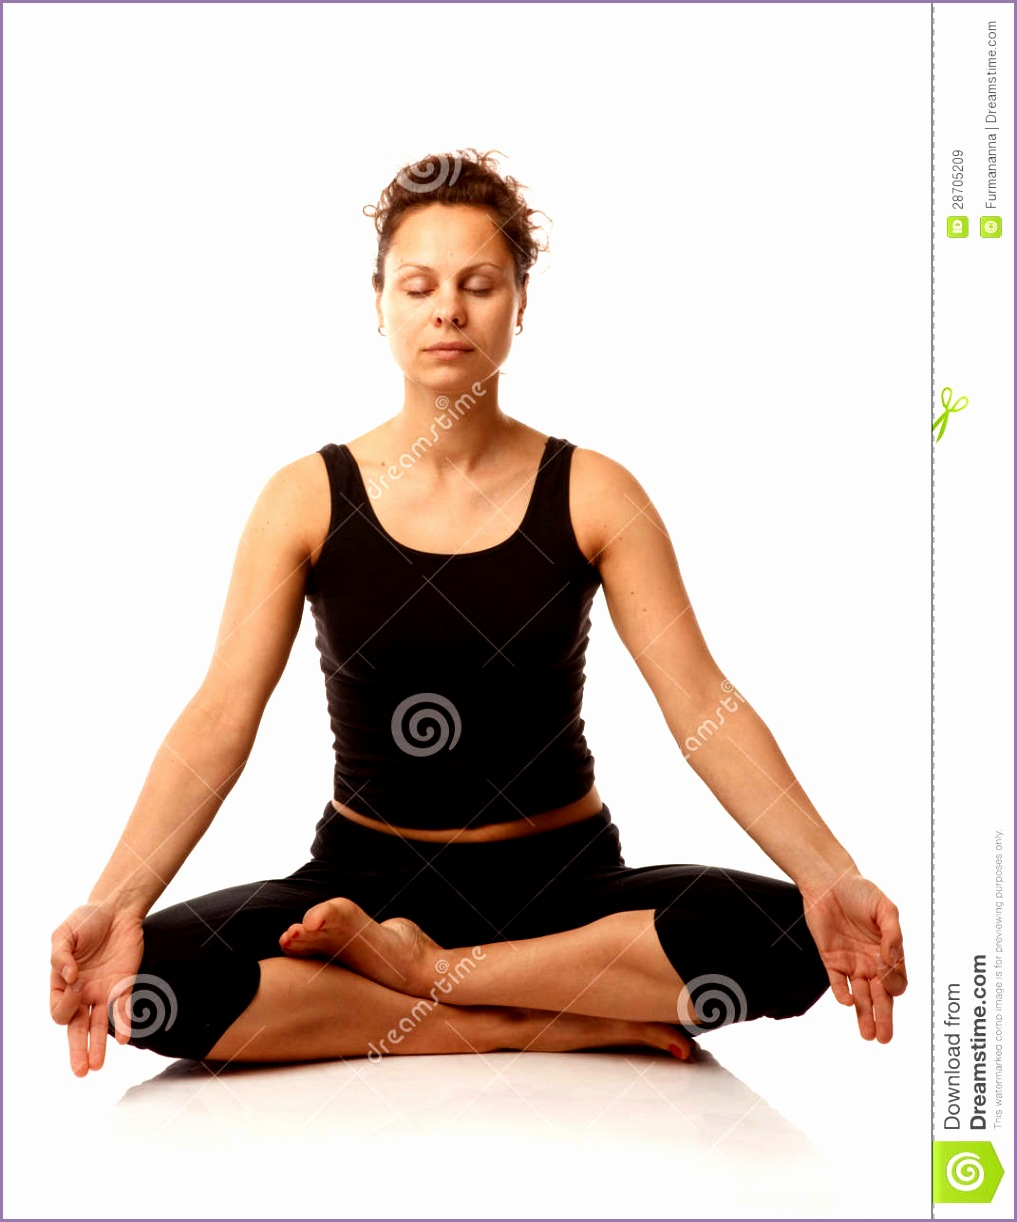 royalty free stock images sitting yoga pose image